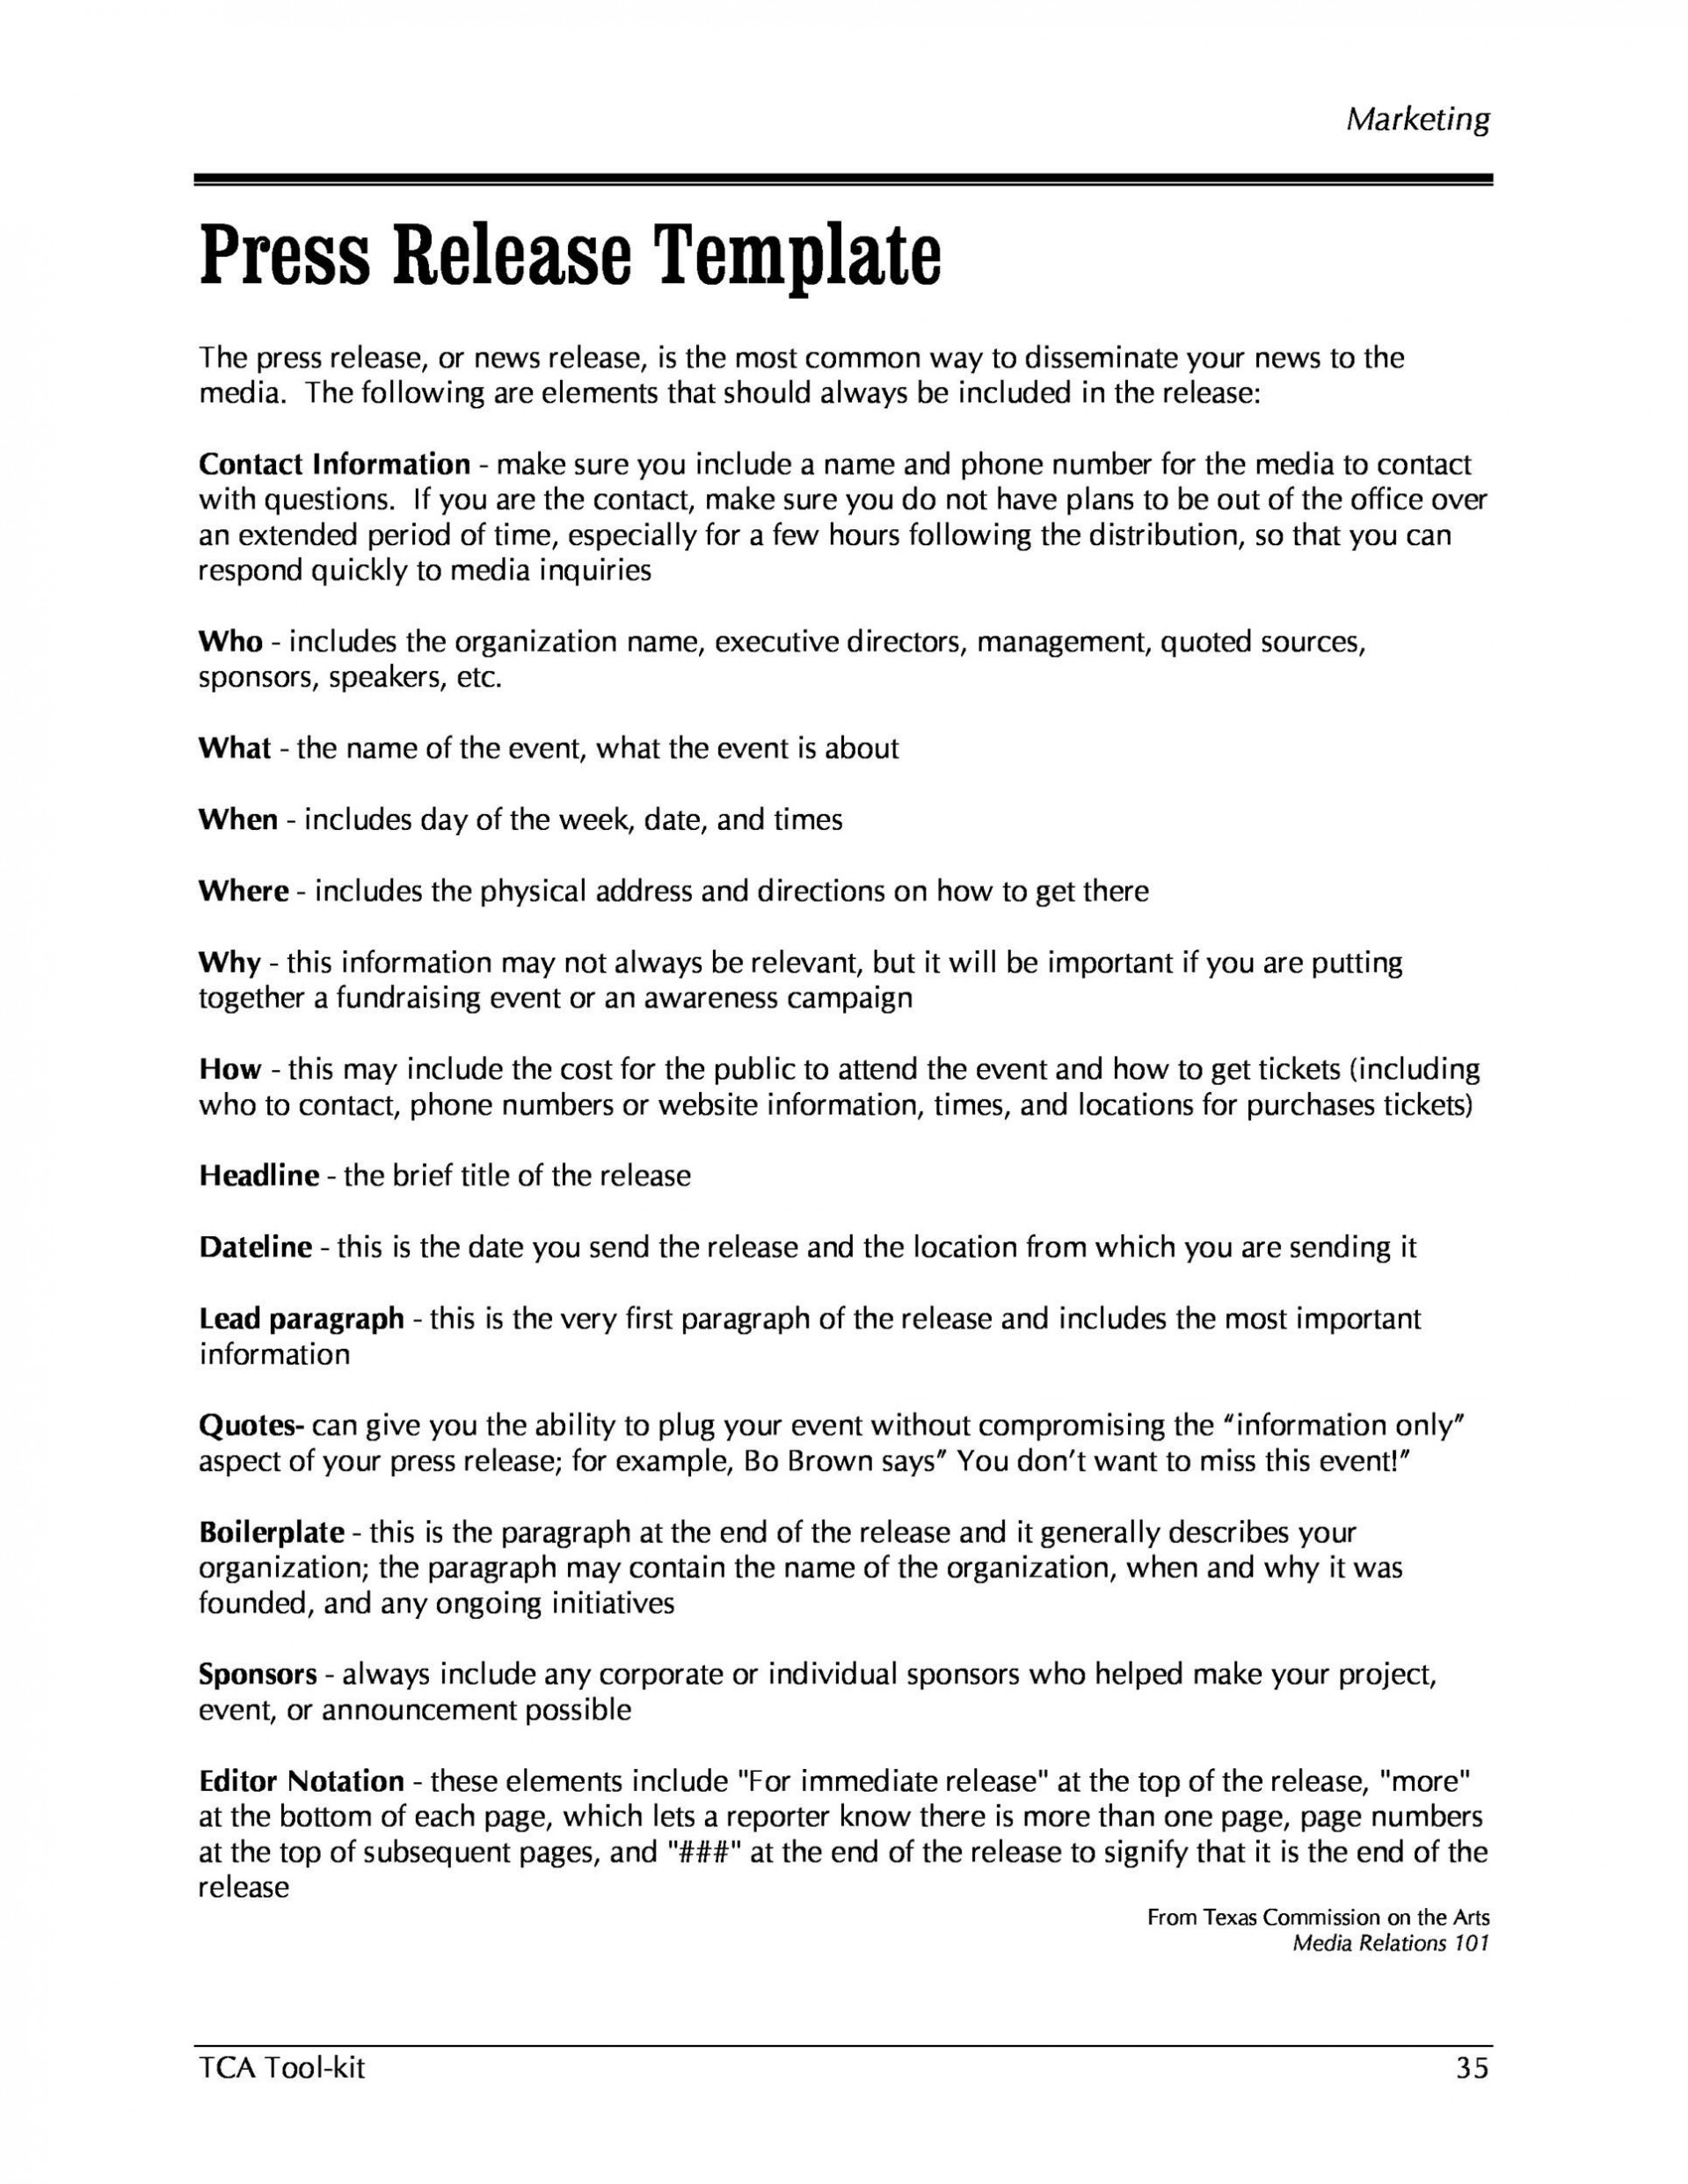 008 Fascinating Pres Release Template Doc Sample  Format Example1920